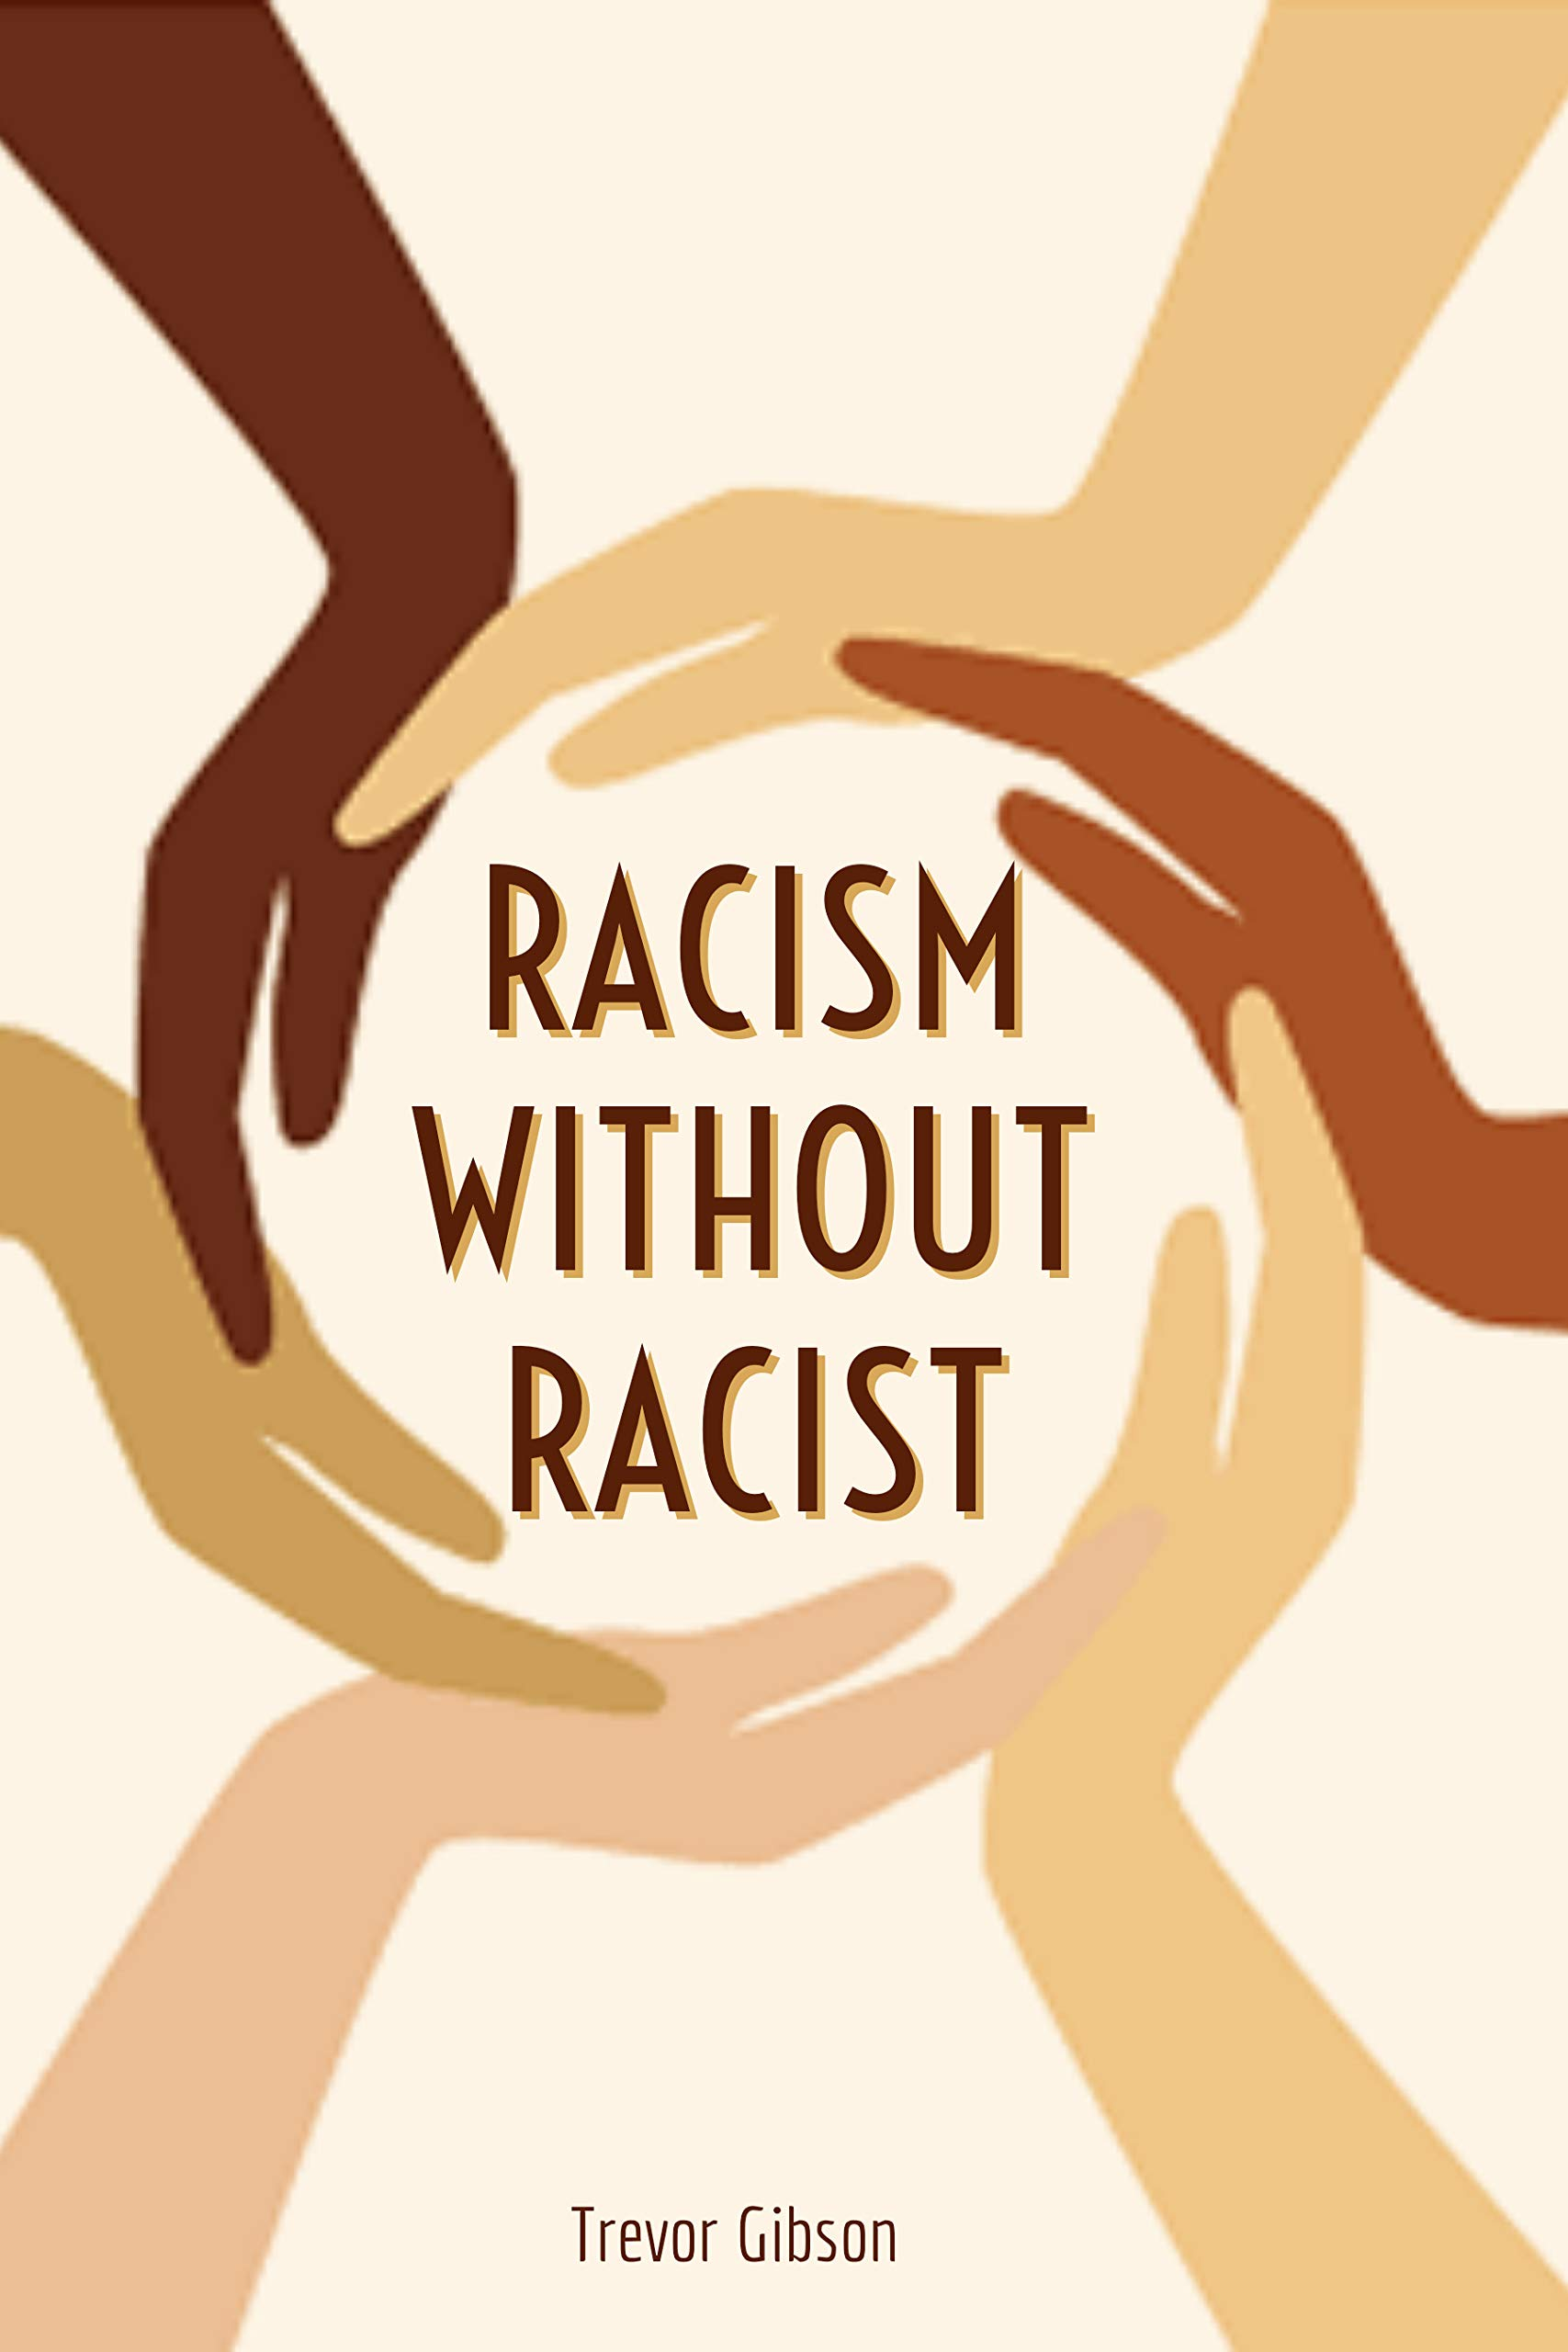 RACISM WITHOUT RACIST: Chants Of Racism, Privileges, Police Brutality, Racial Discrimination, Chokeholds, Strangleholds, Killings And Protest. Listen To Our Voices!!!